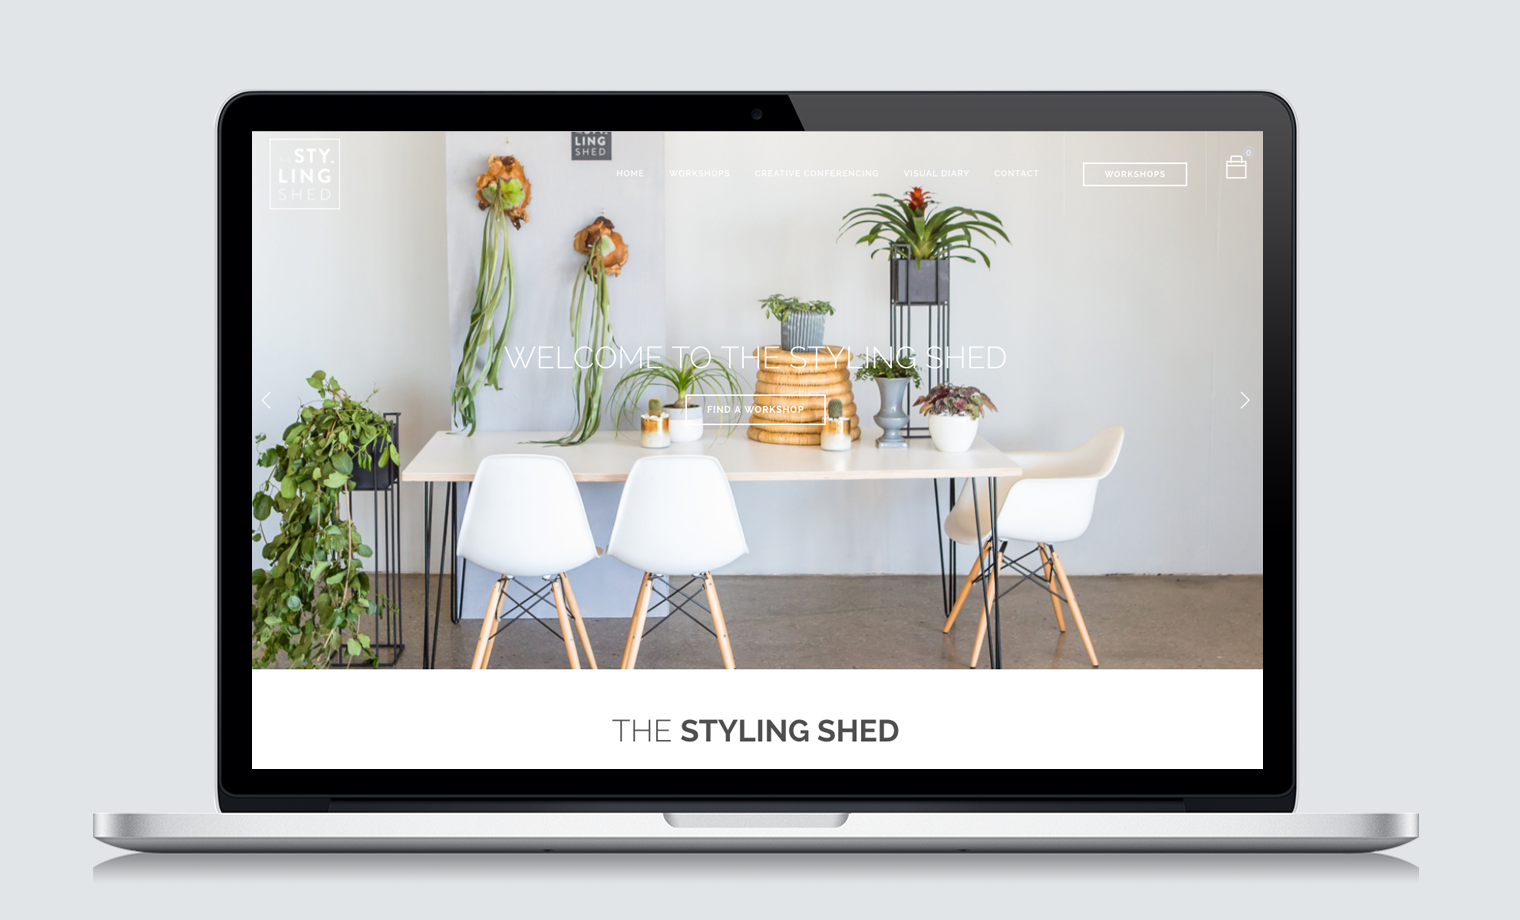 THE STYLING SHED WEBSITE